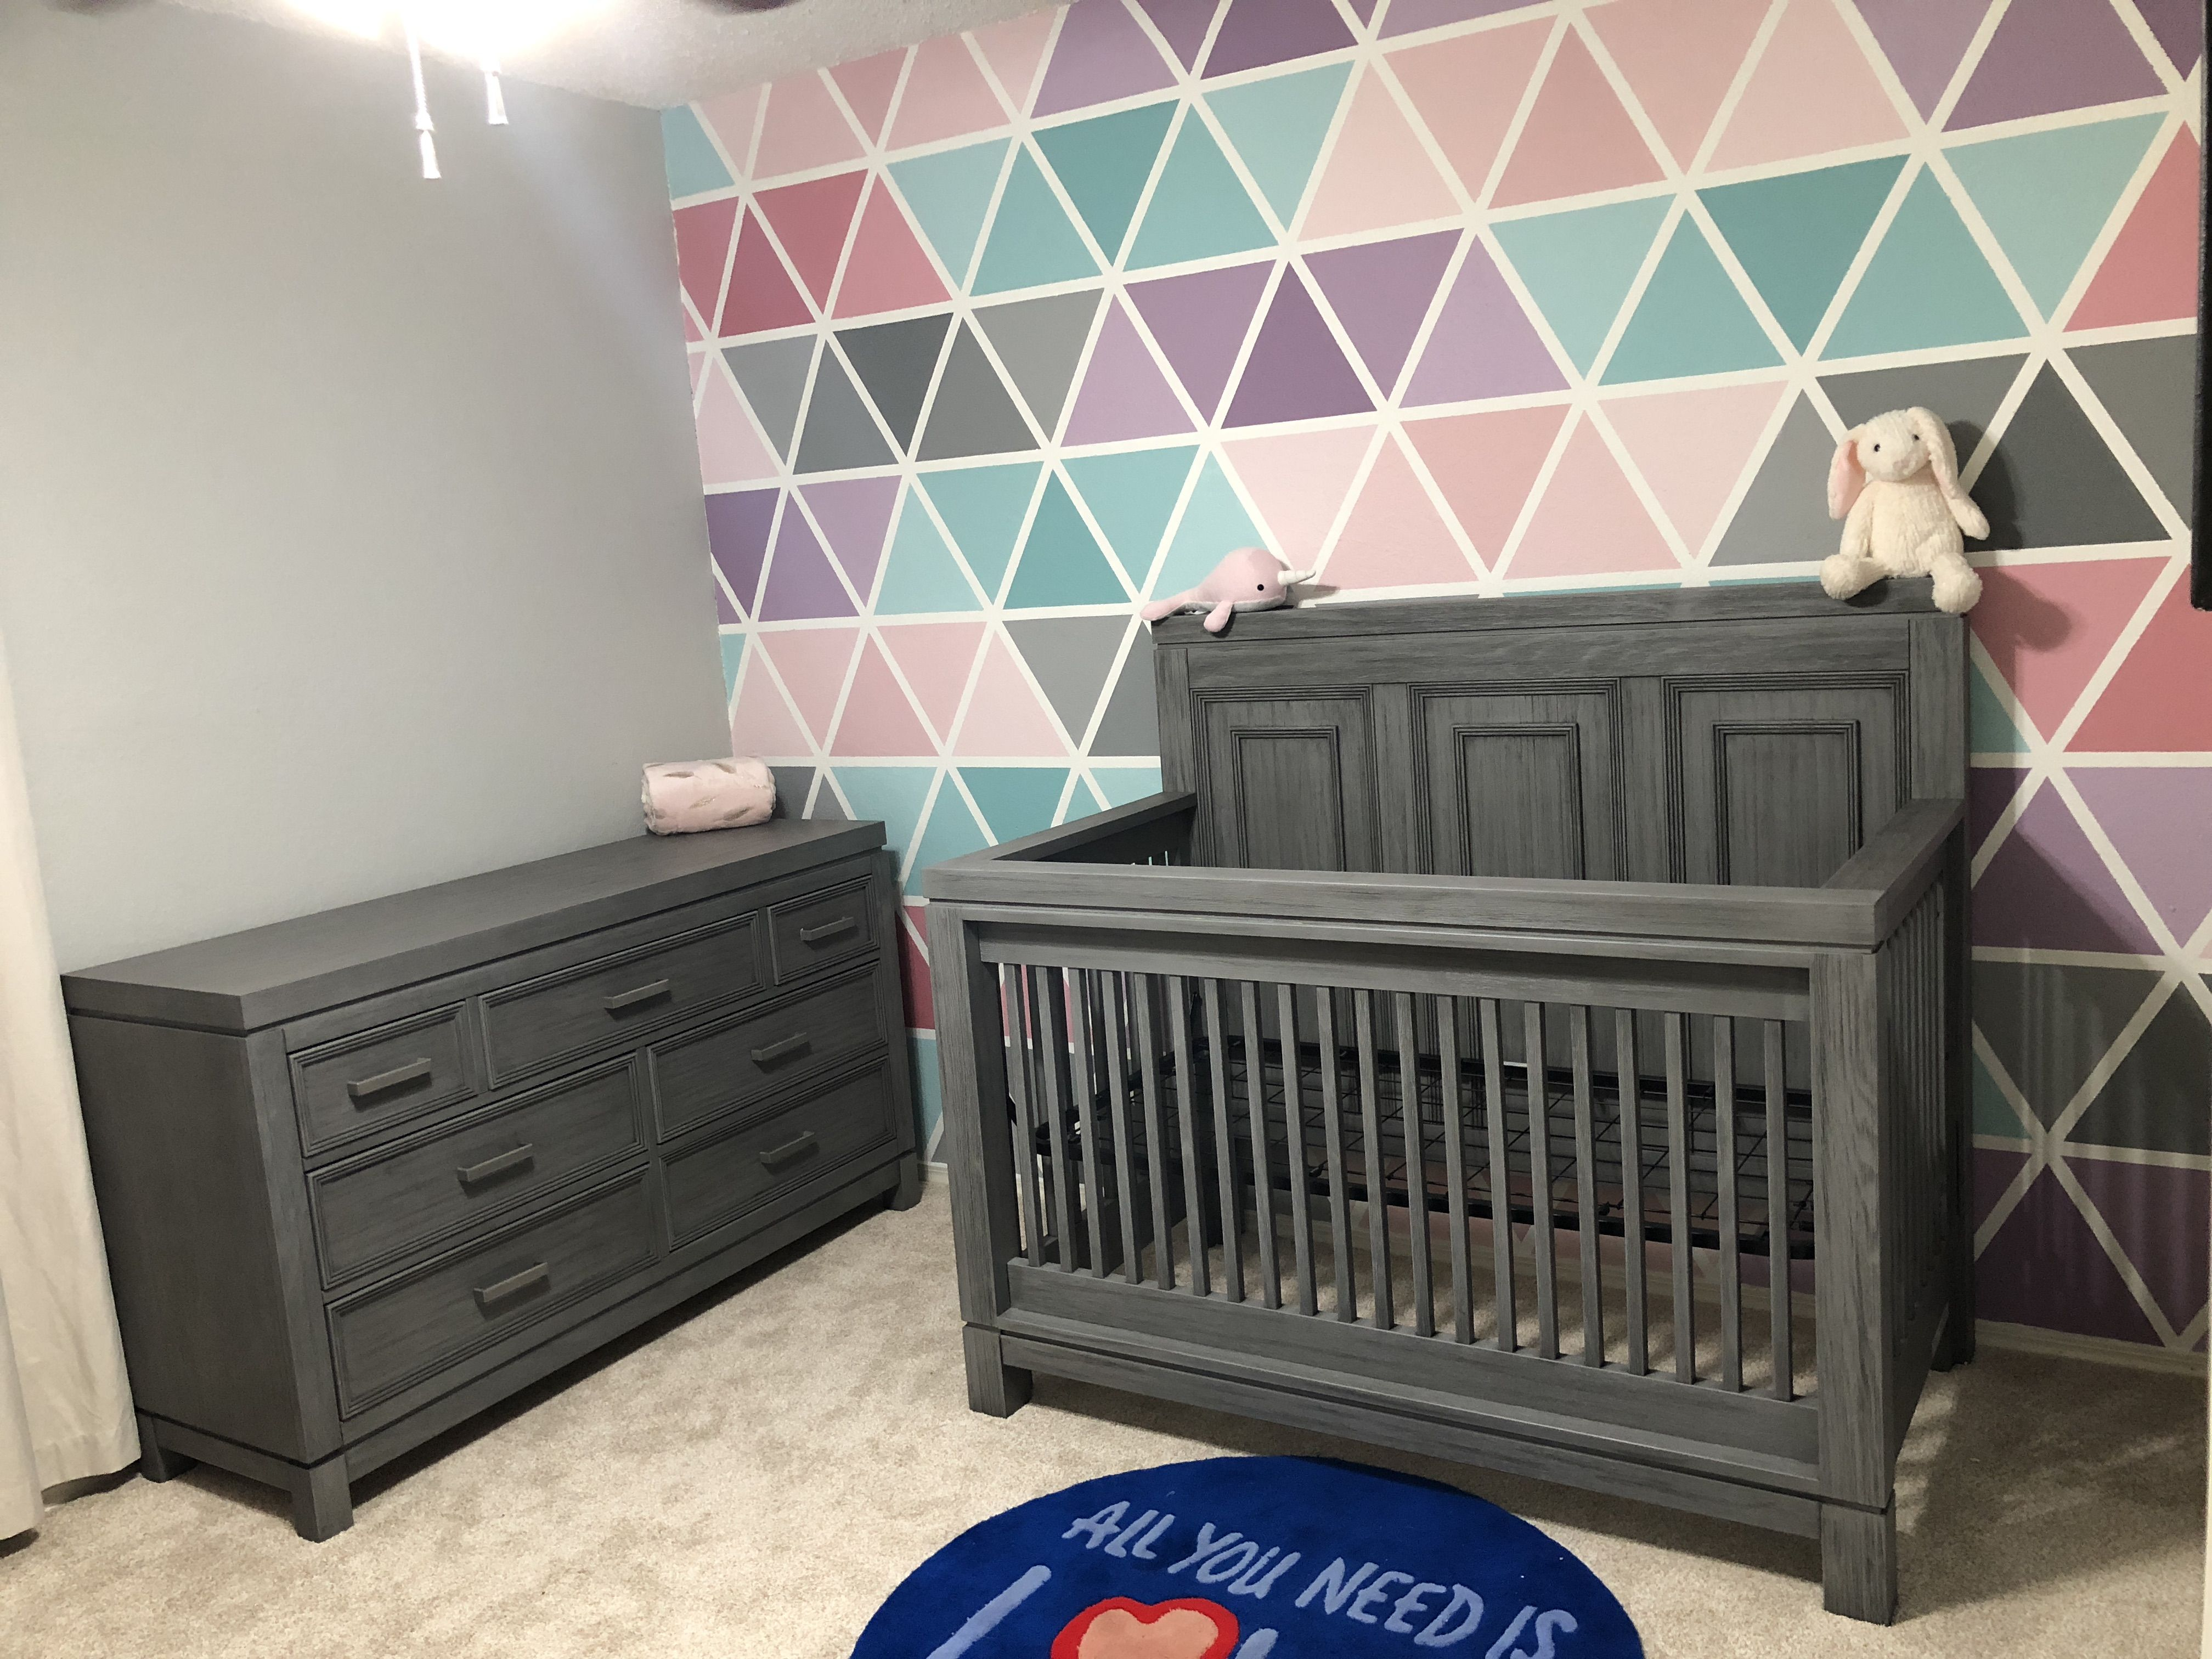 Got The Crib And Dresser In Got This Soho Baby Crib And Dresser